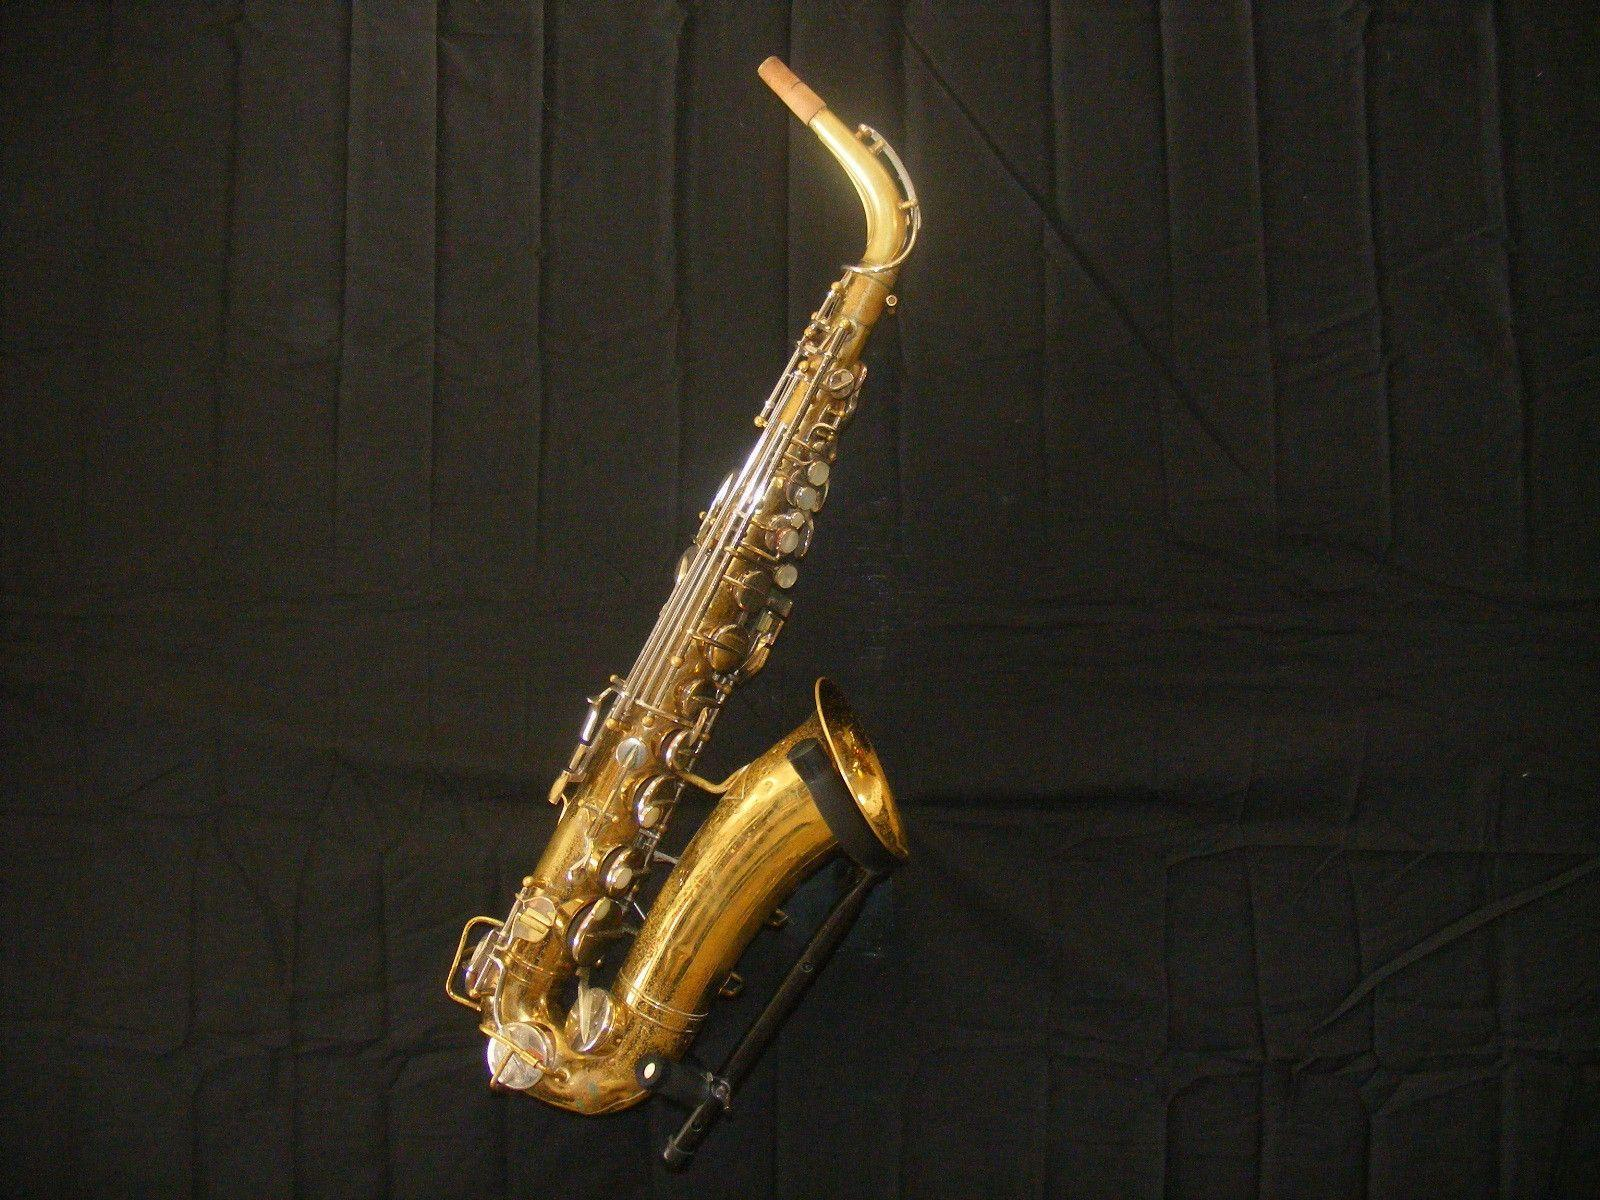 Cannonball Saxophone Wallpaper - Viewing Gallery